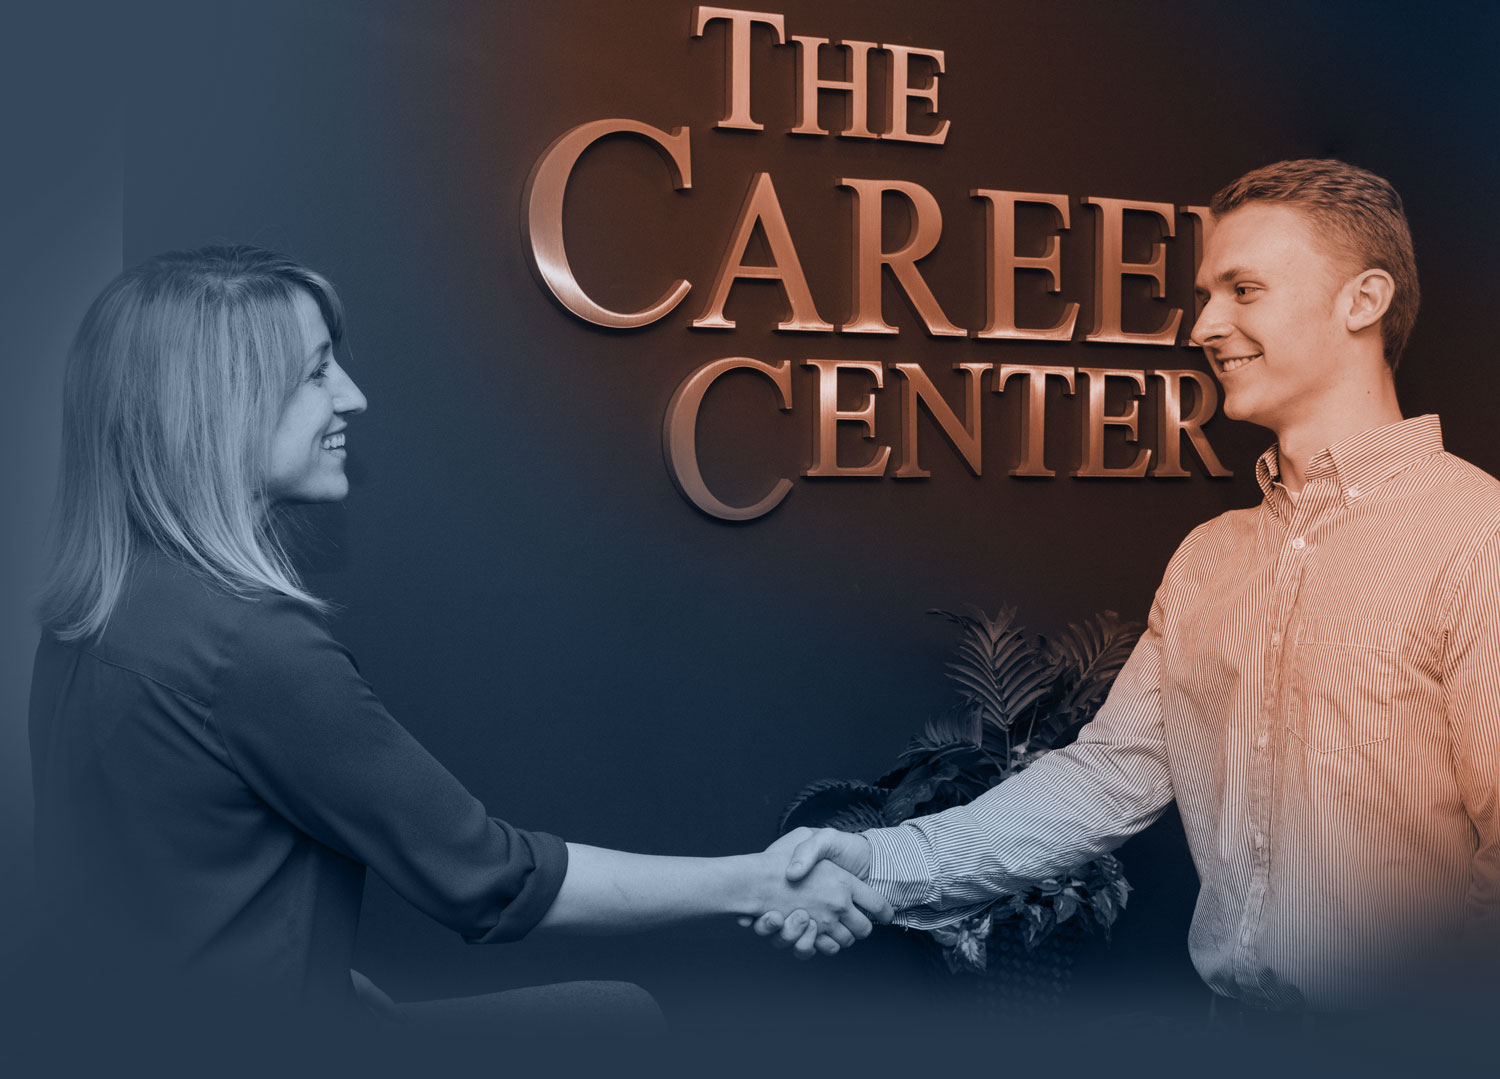 Two people greeting one another at the Career Center